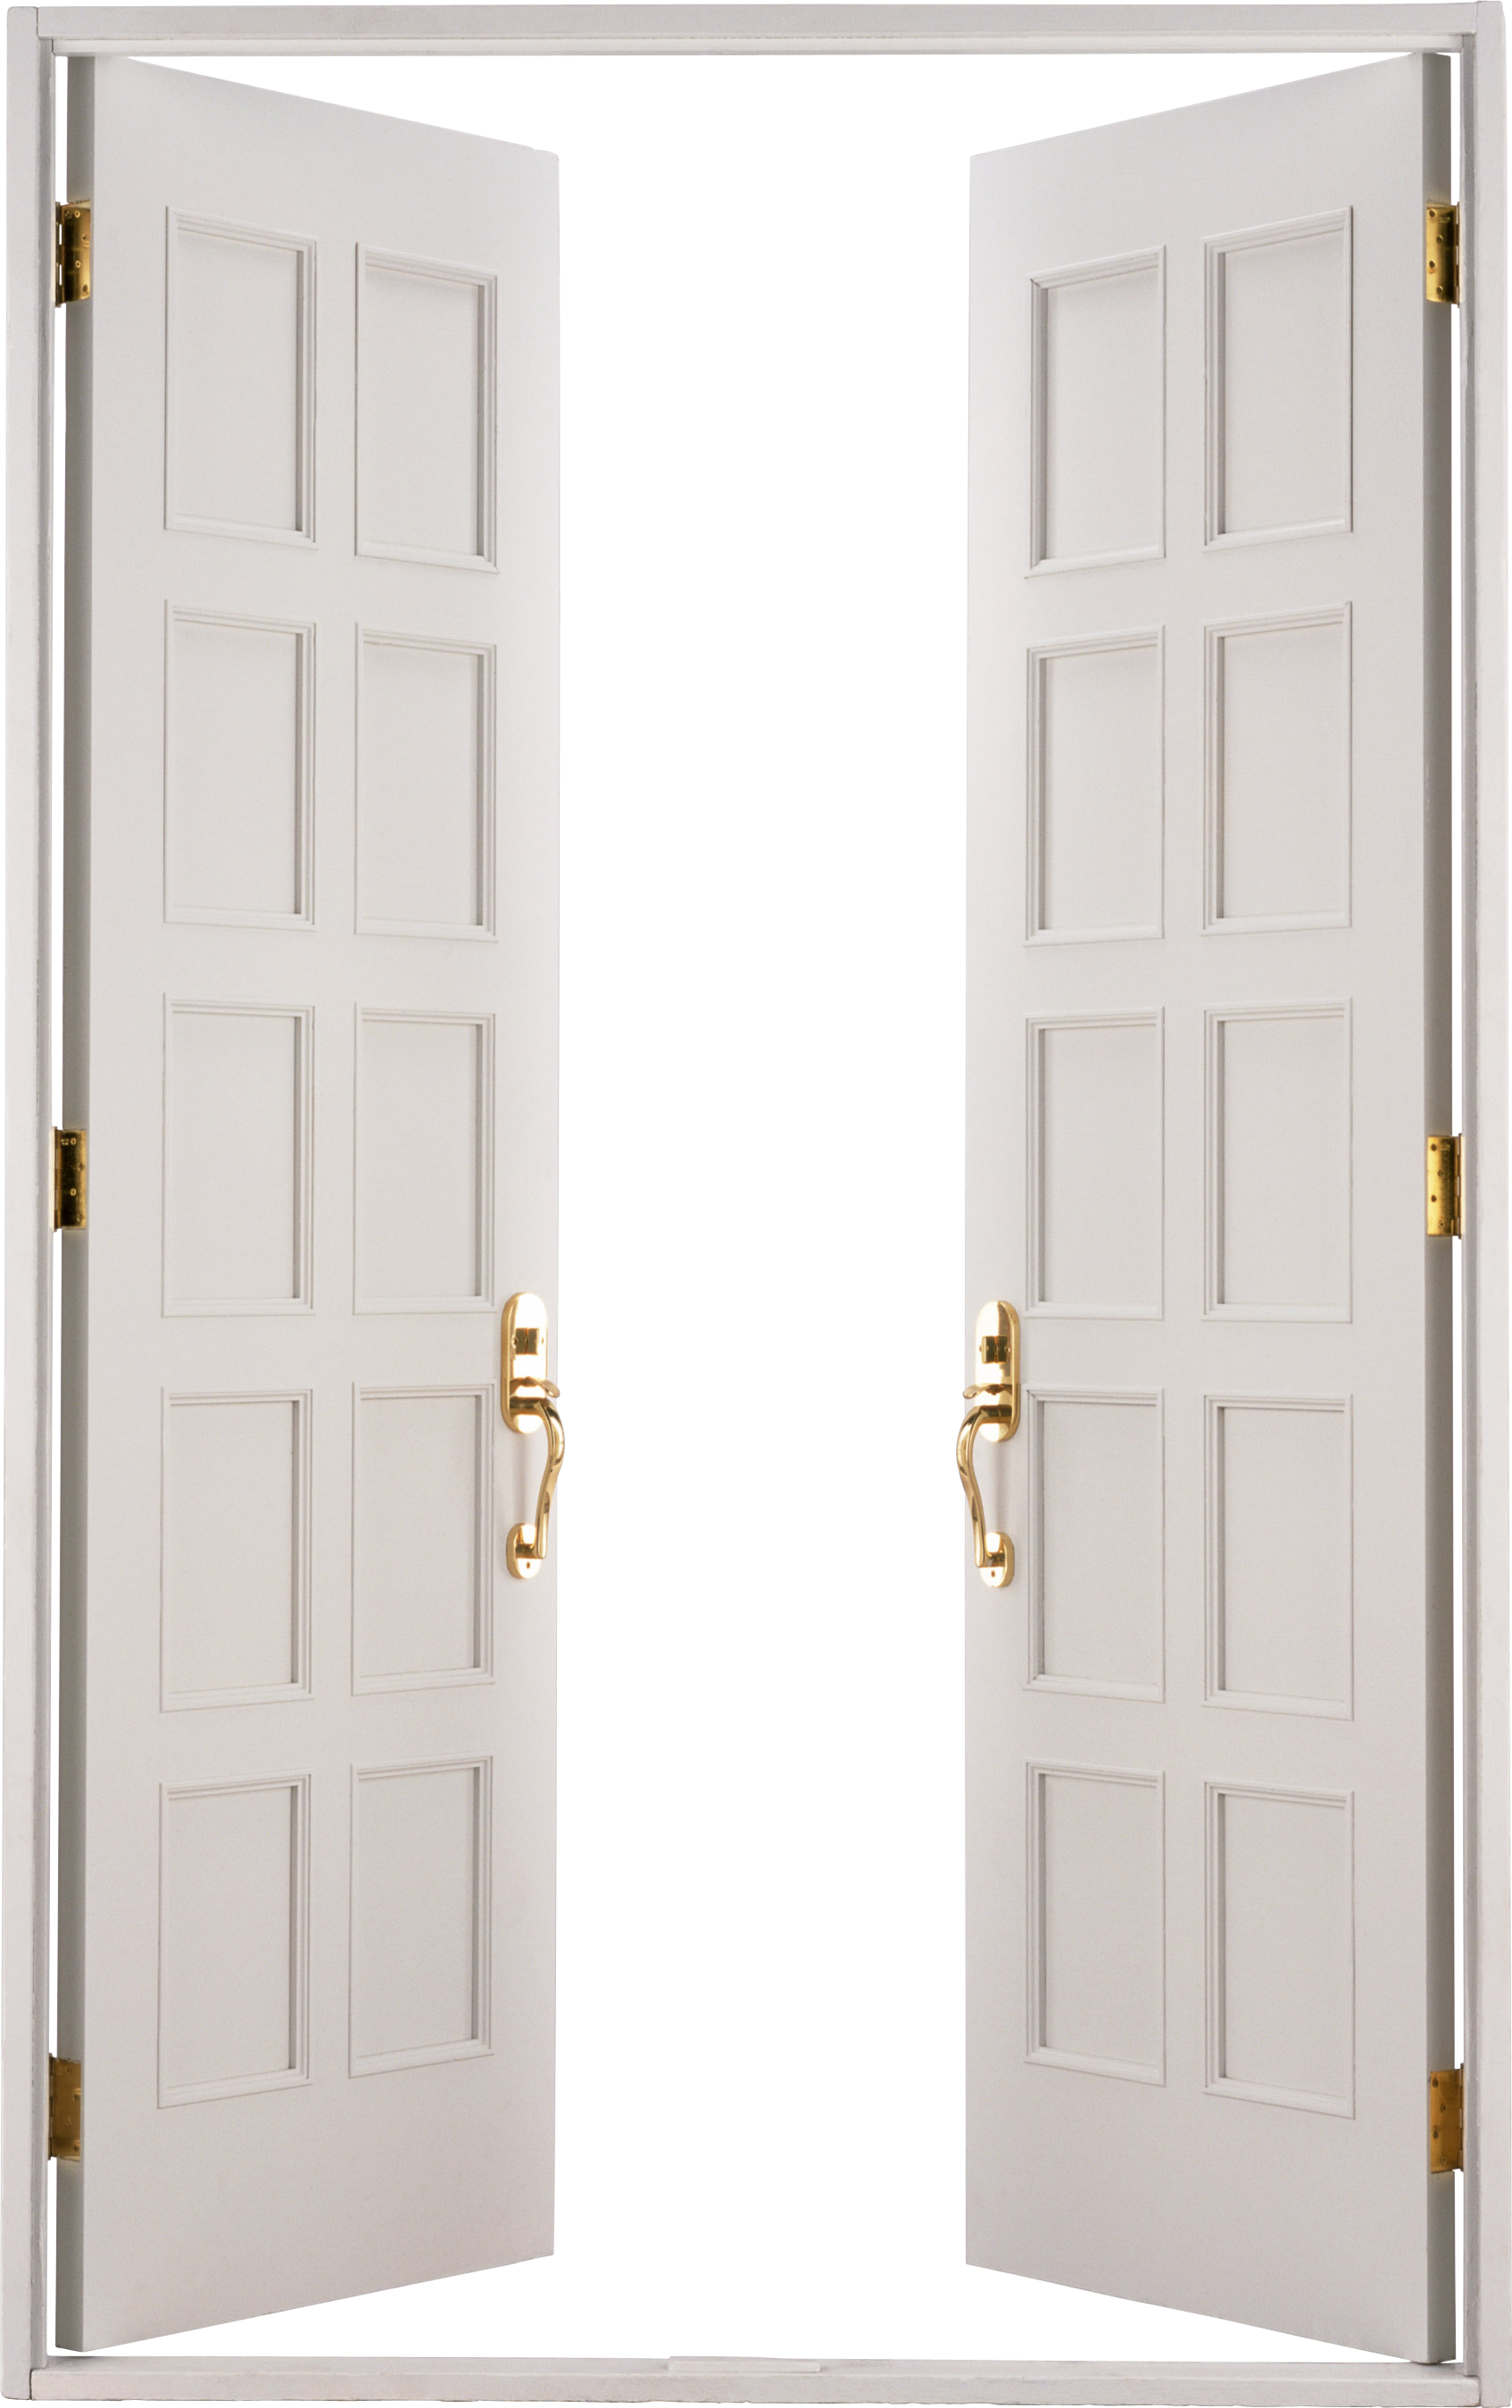 Clipart door room door. Png images wood open